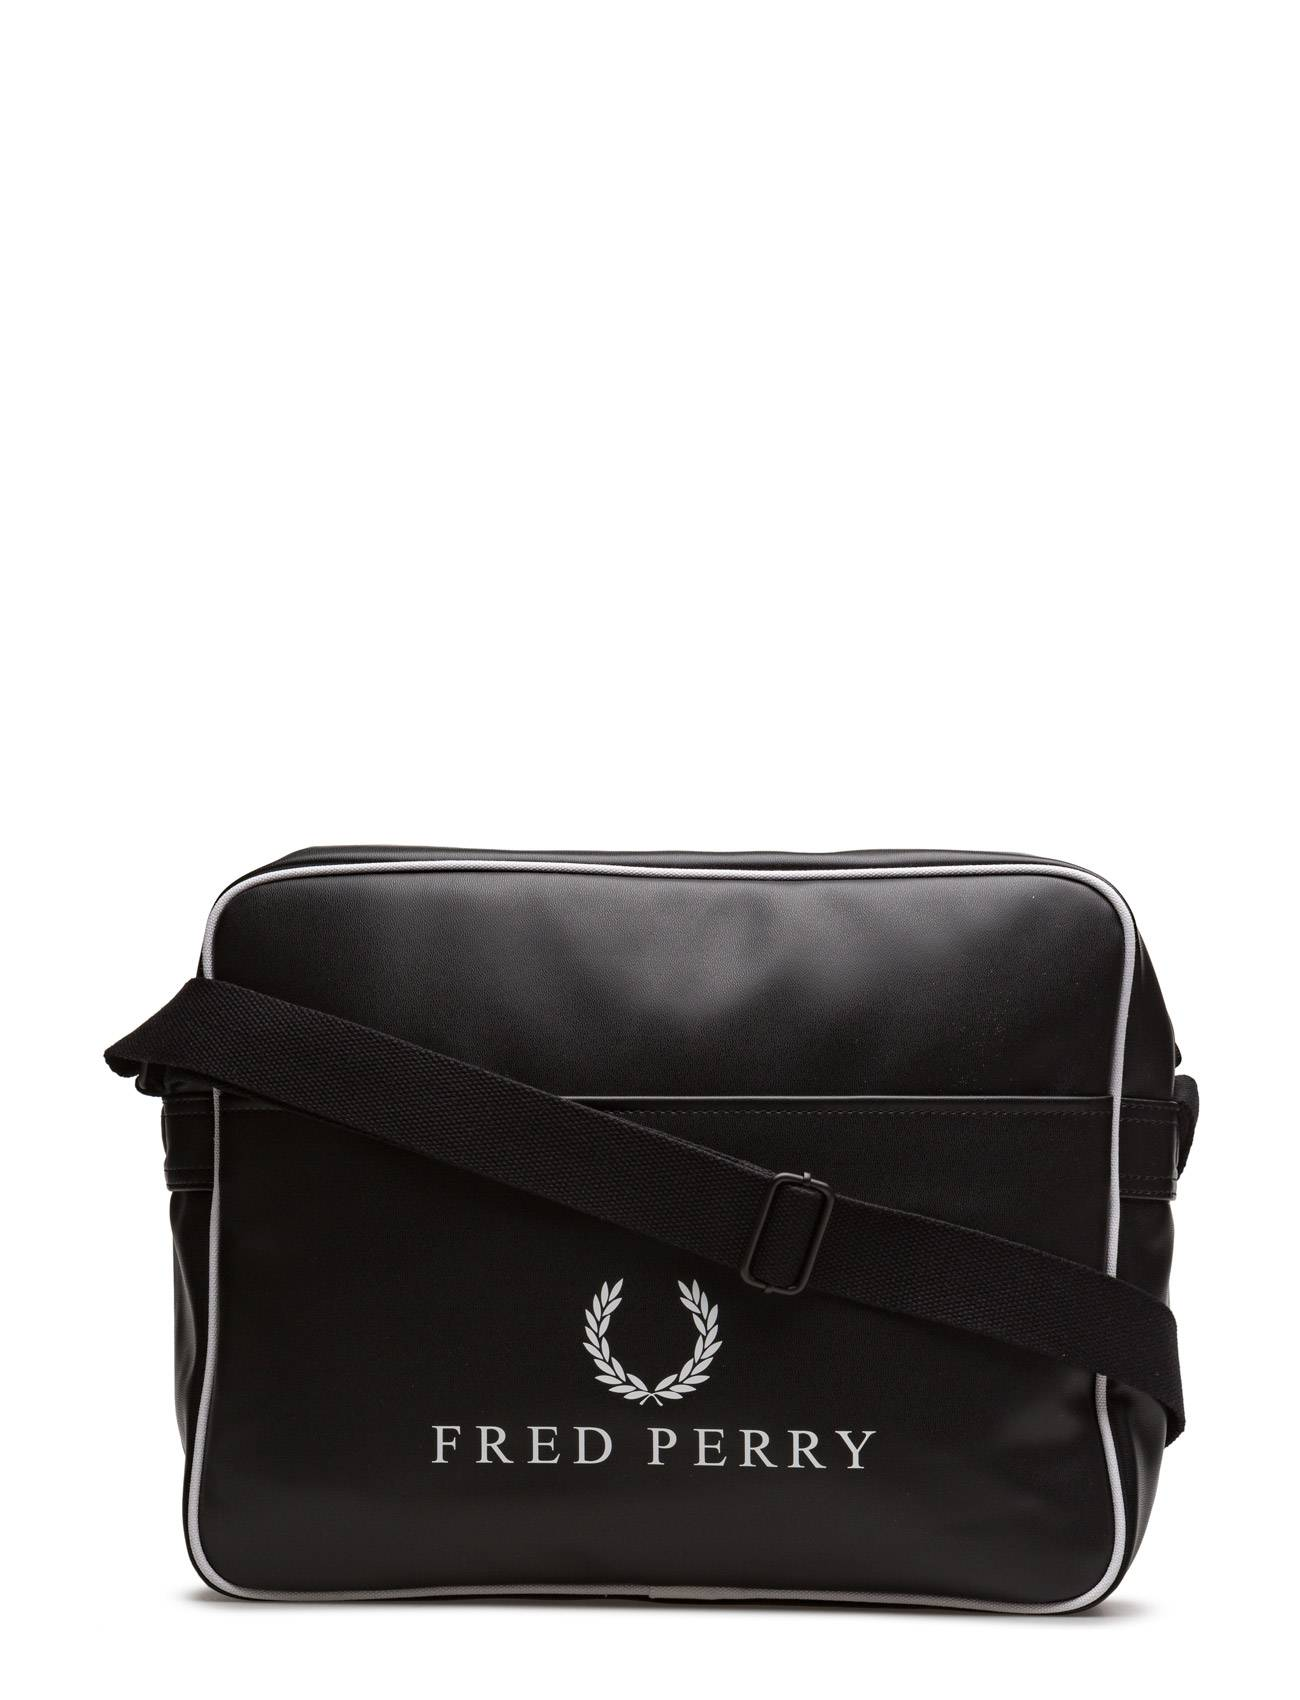 Fred Perry Monochrome Shoulder